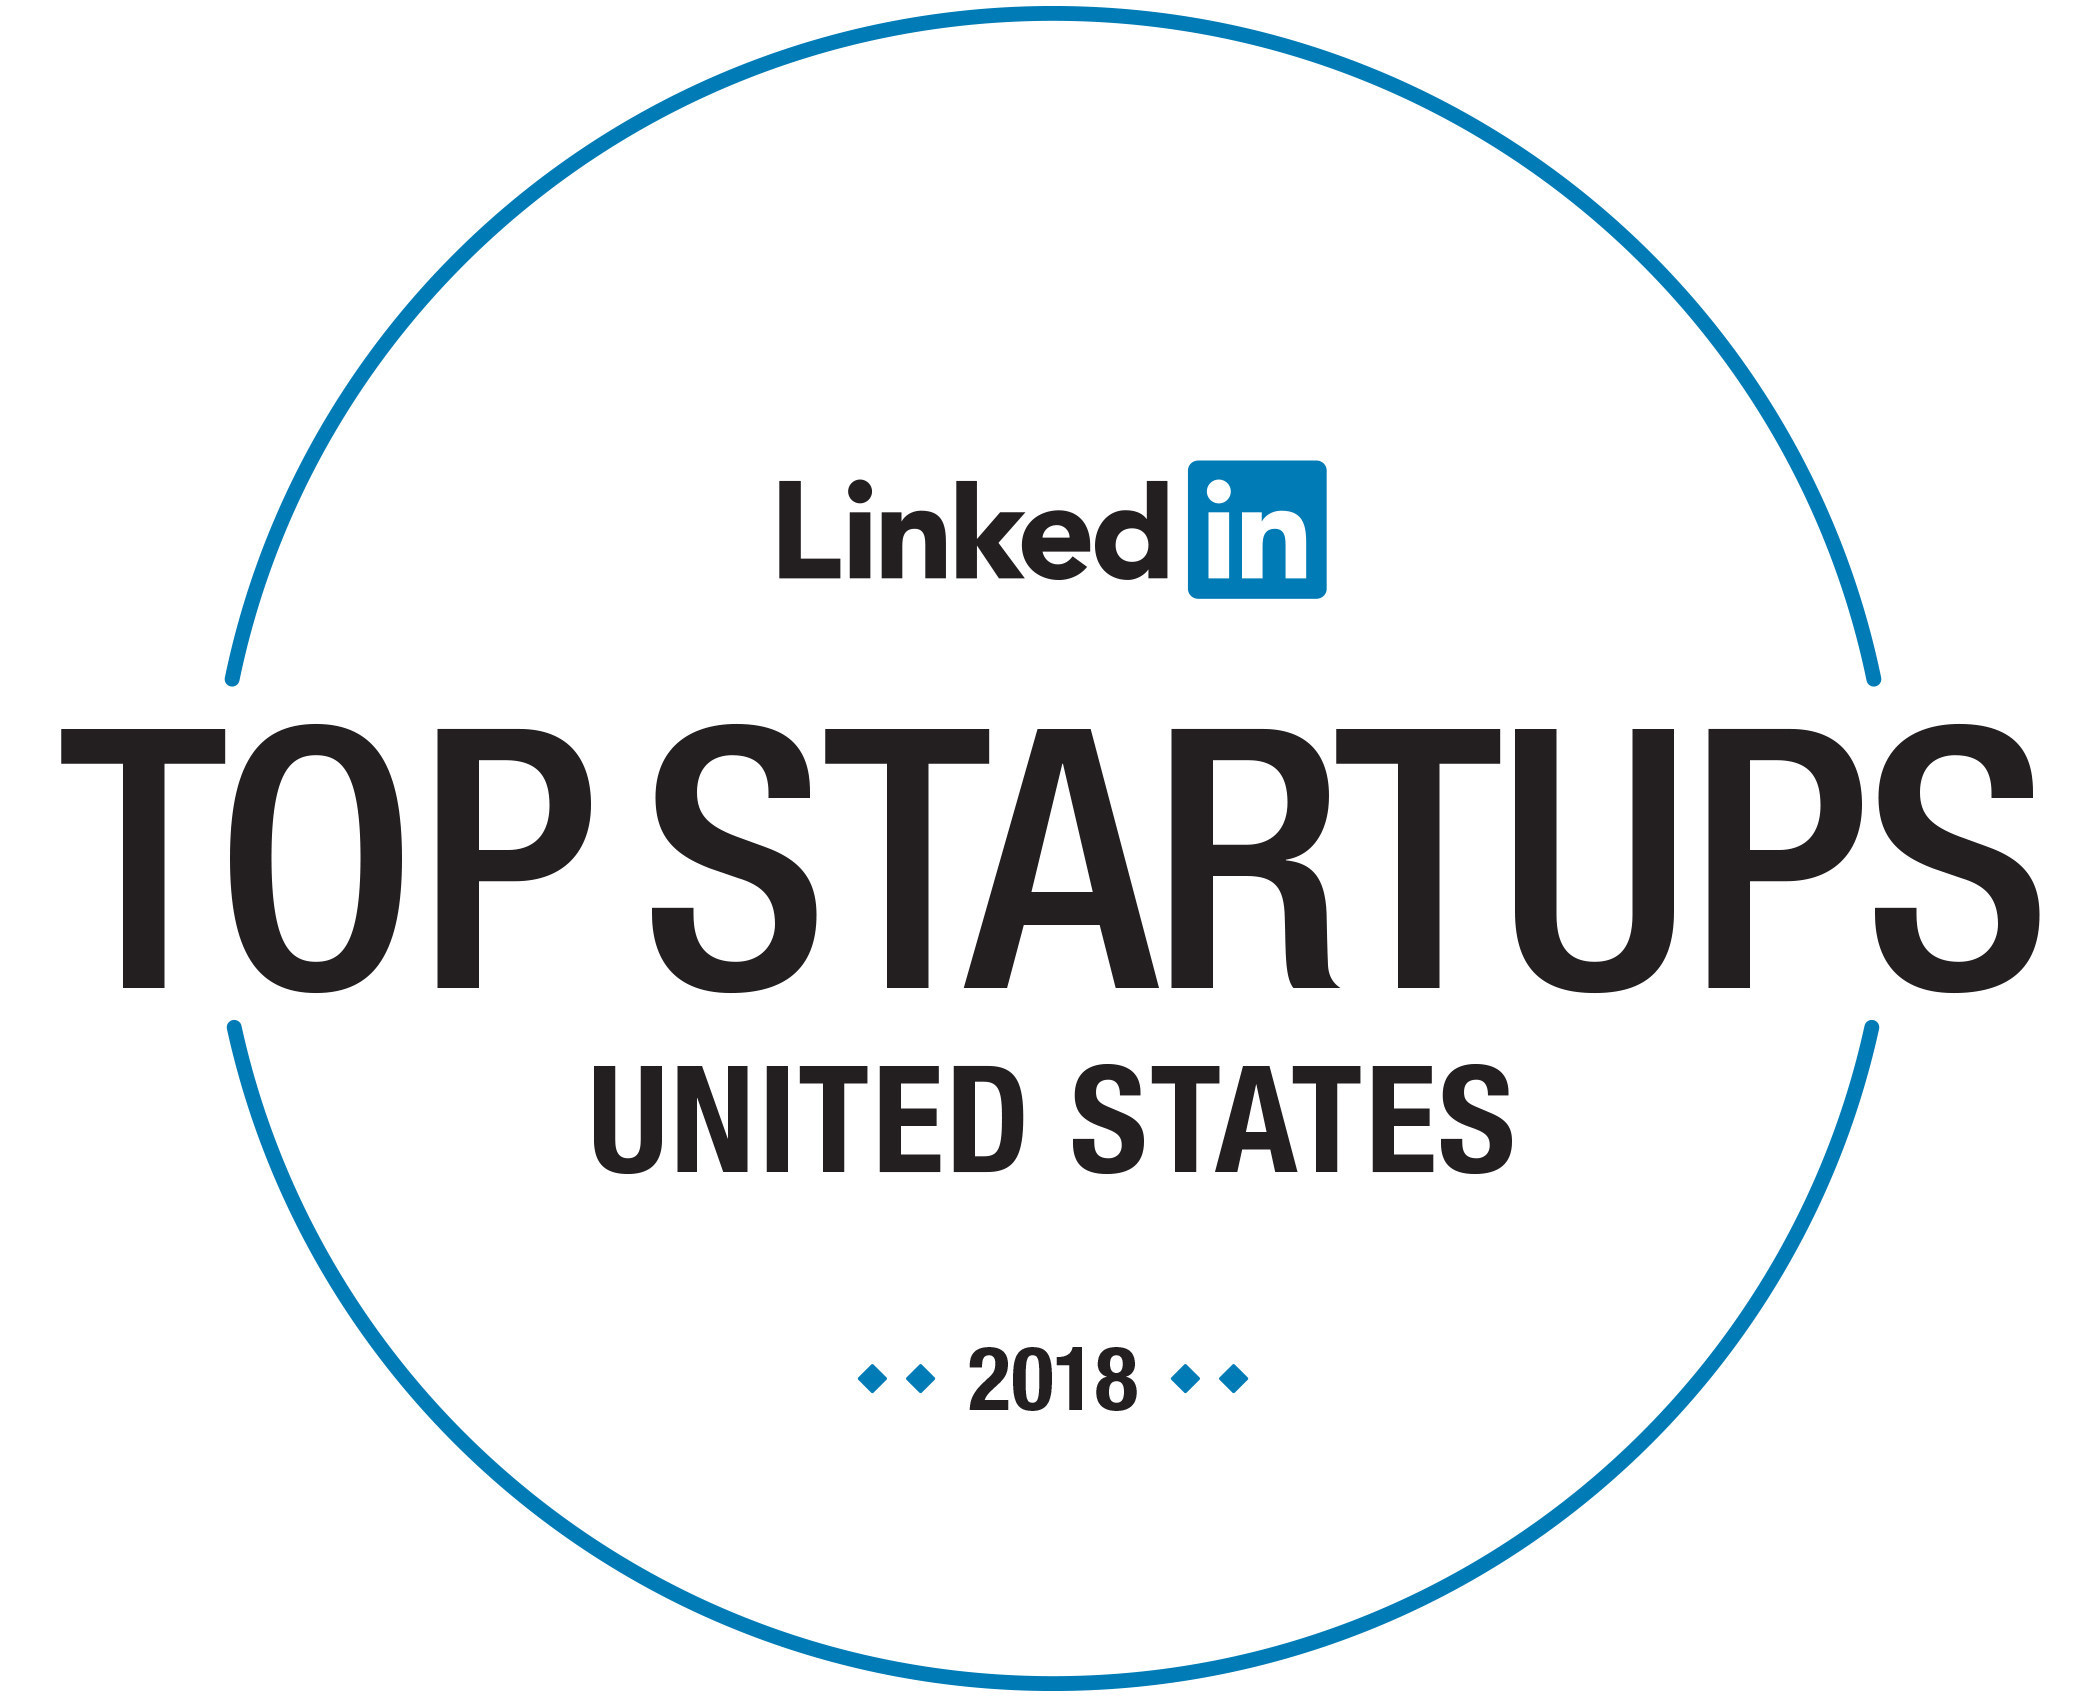 Highspot, the industry's highest-rated sales enablement platform that modern sales reps love, is proud to be named to the 2018 LinkedIn Top Startups list.